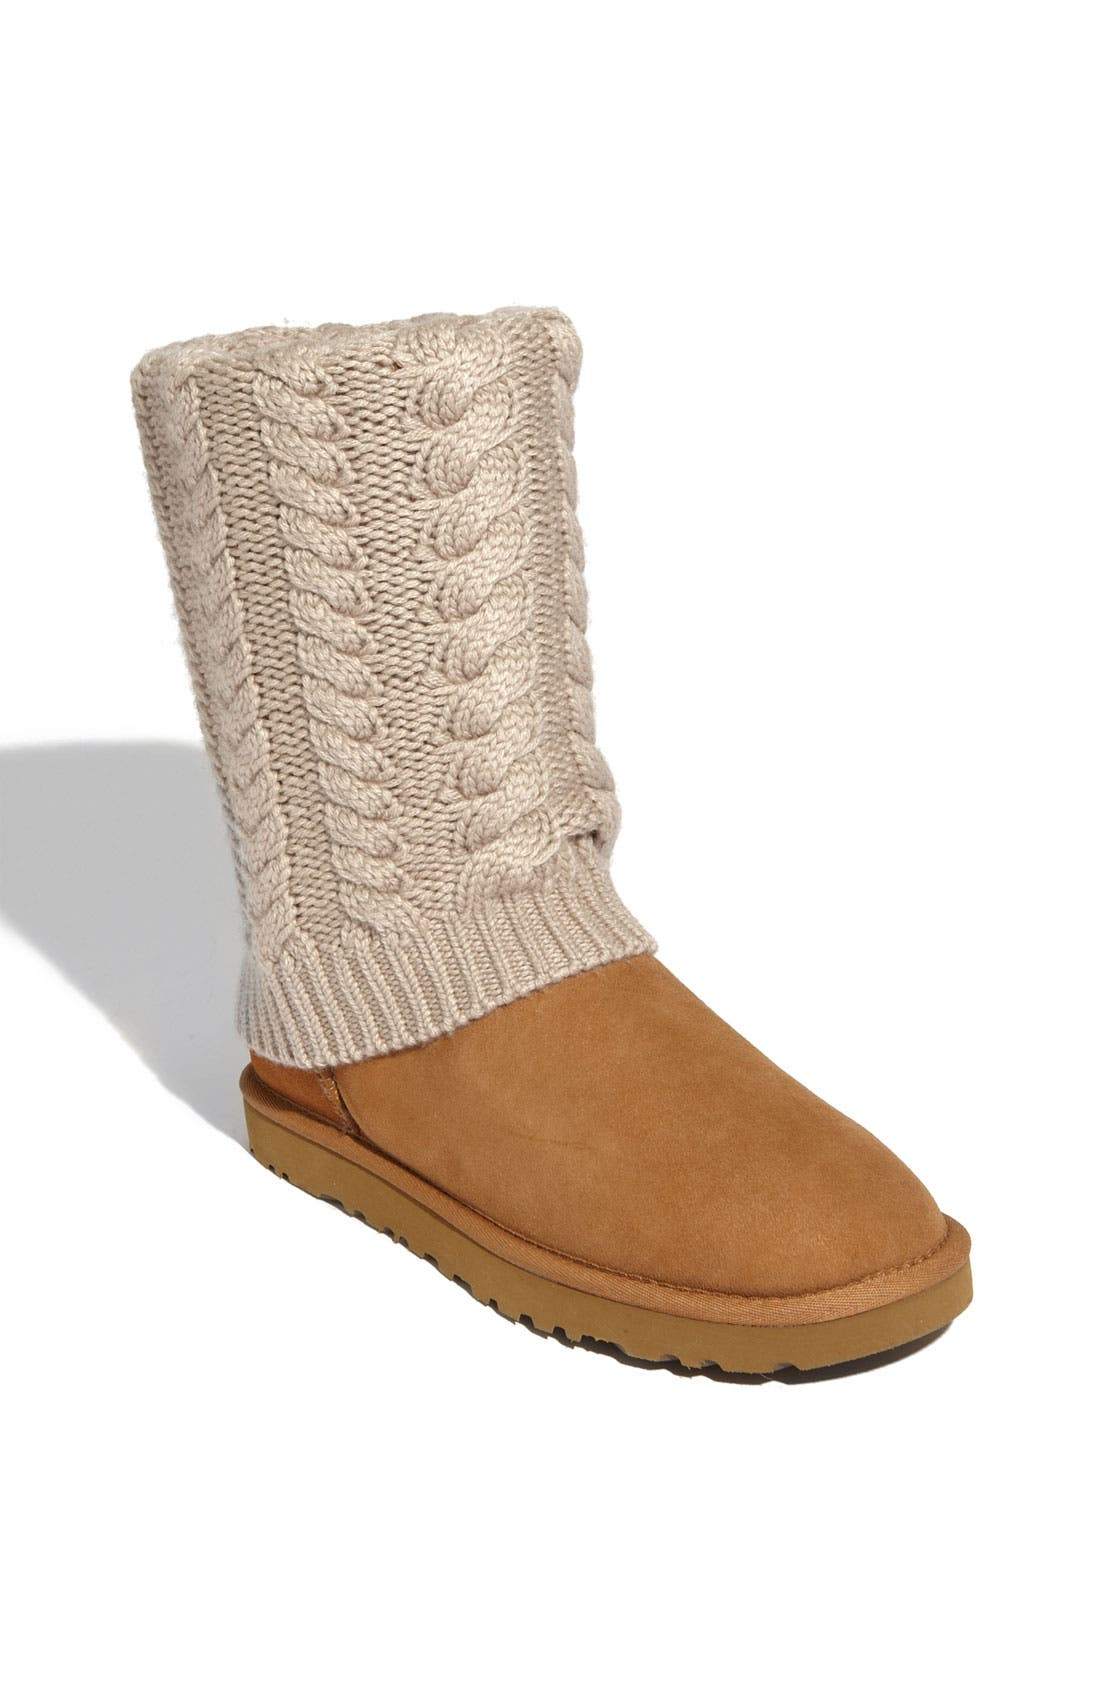 Alternate Image 1 Selected - UGG® Australia 'Tularosa Route Detachable' Boot with Removable Knit Overlay (Women)